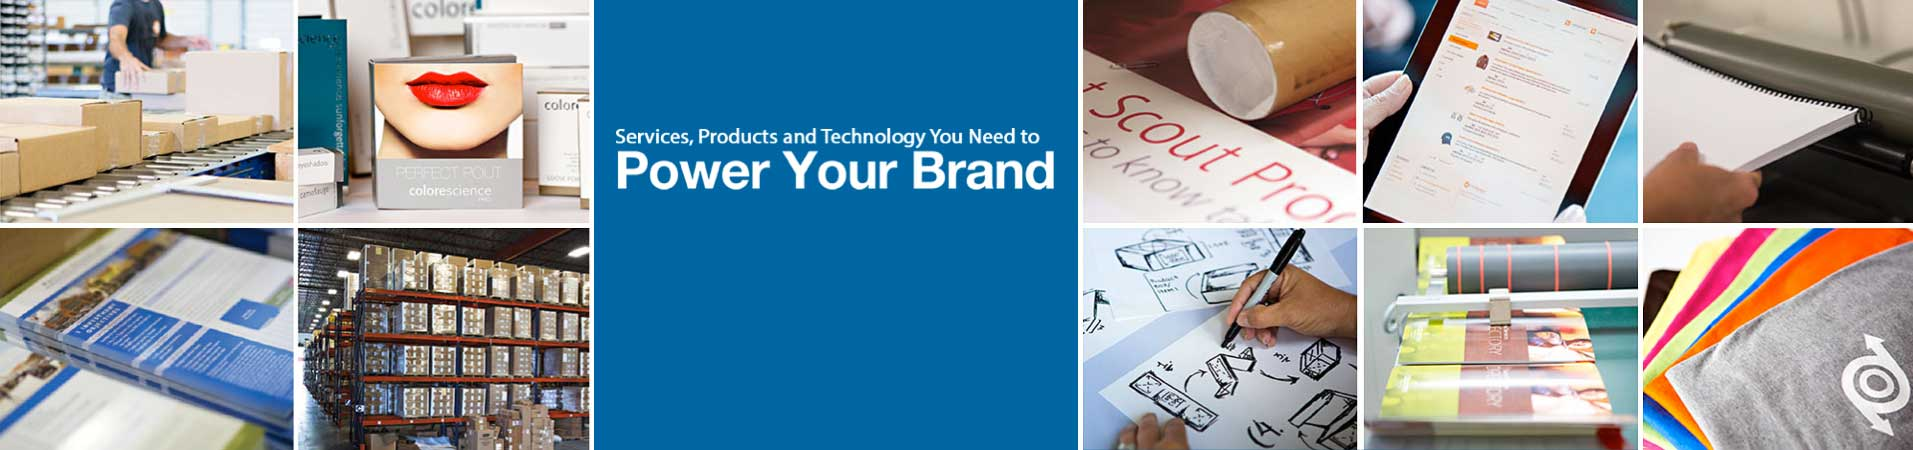 The Services, Products and Technology to Power Your Brand.  DataSource.